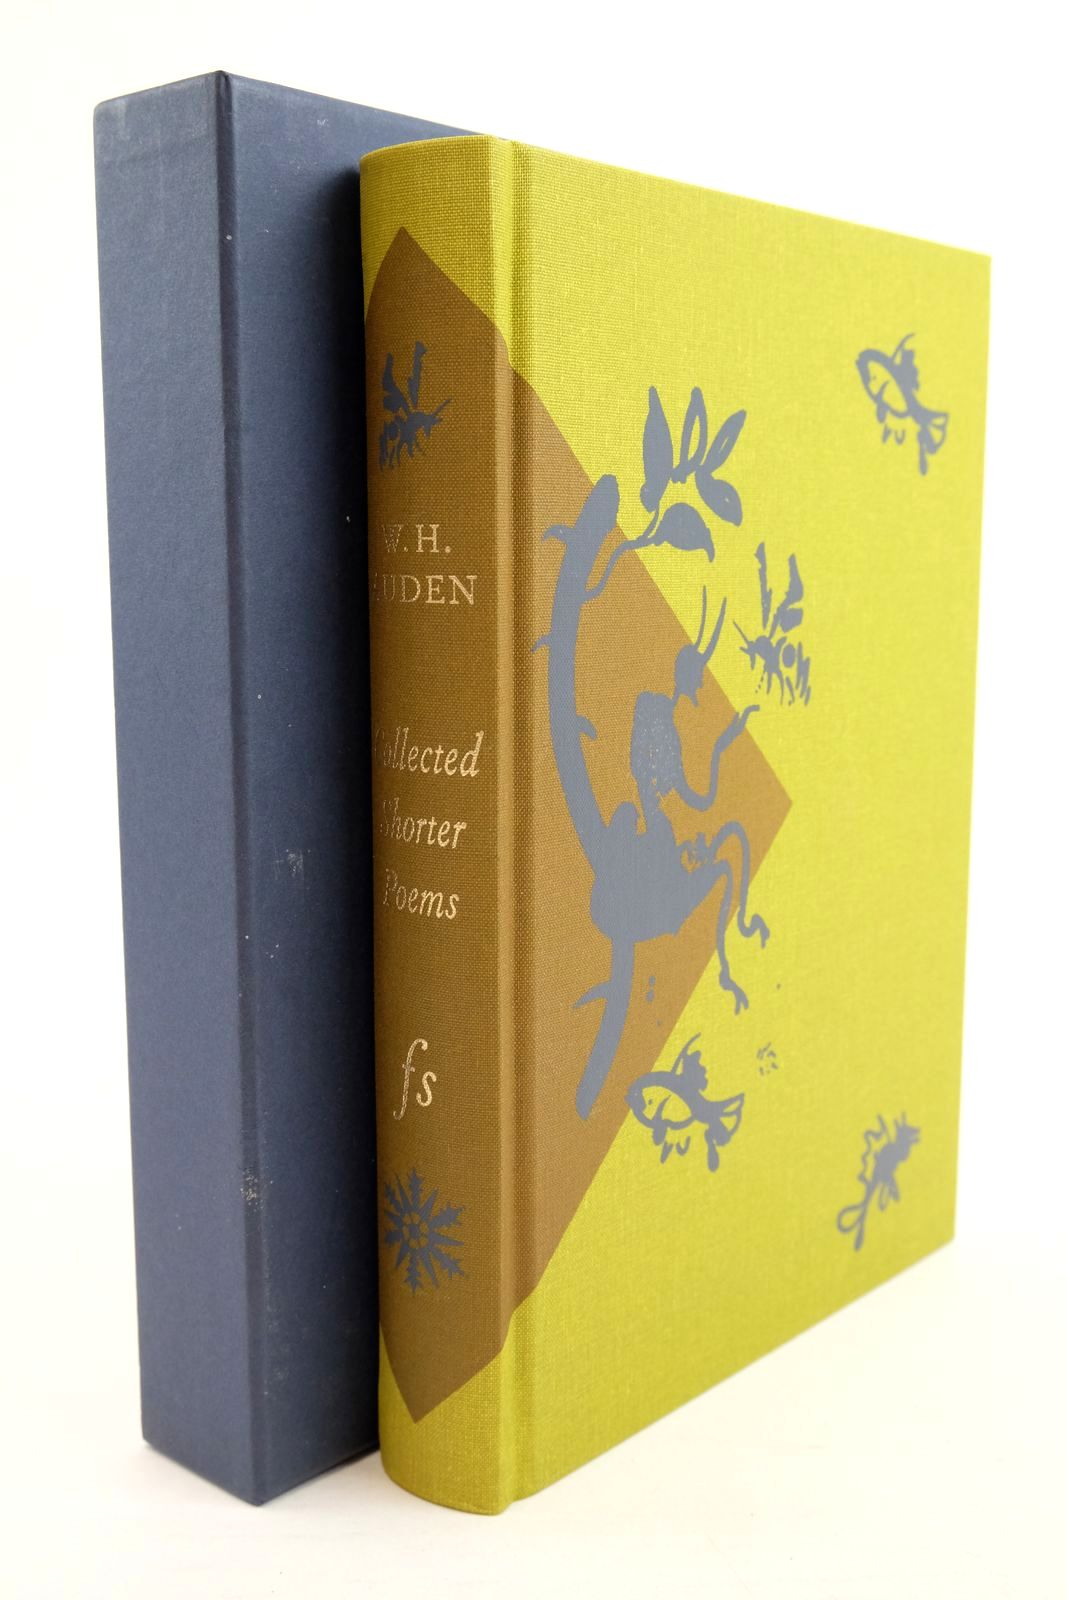 Photo of COLLECTED SHORTER POEMS 1927-1957 written by Auden, W.H. Smith, Alexander illustrated by Grimwood, Brian published by Folio Society (STOCK CODE: 1321026)  for sale by Stella & Rose's Books